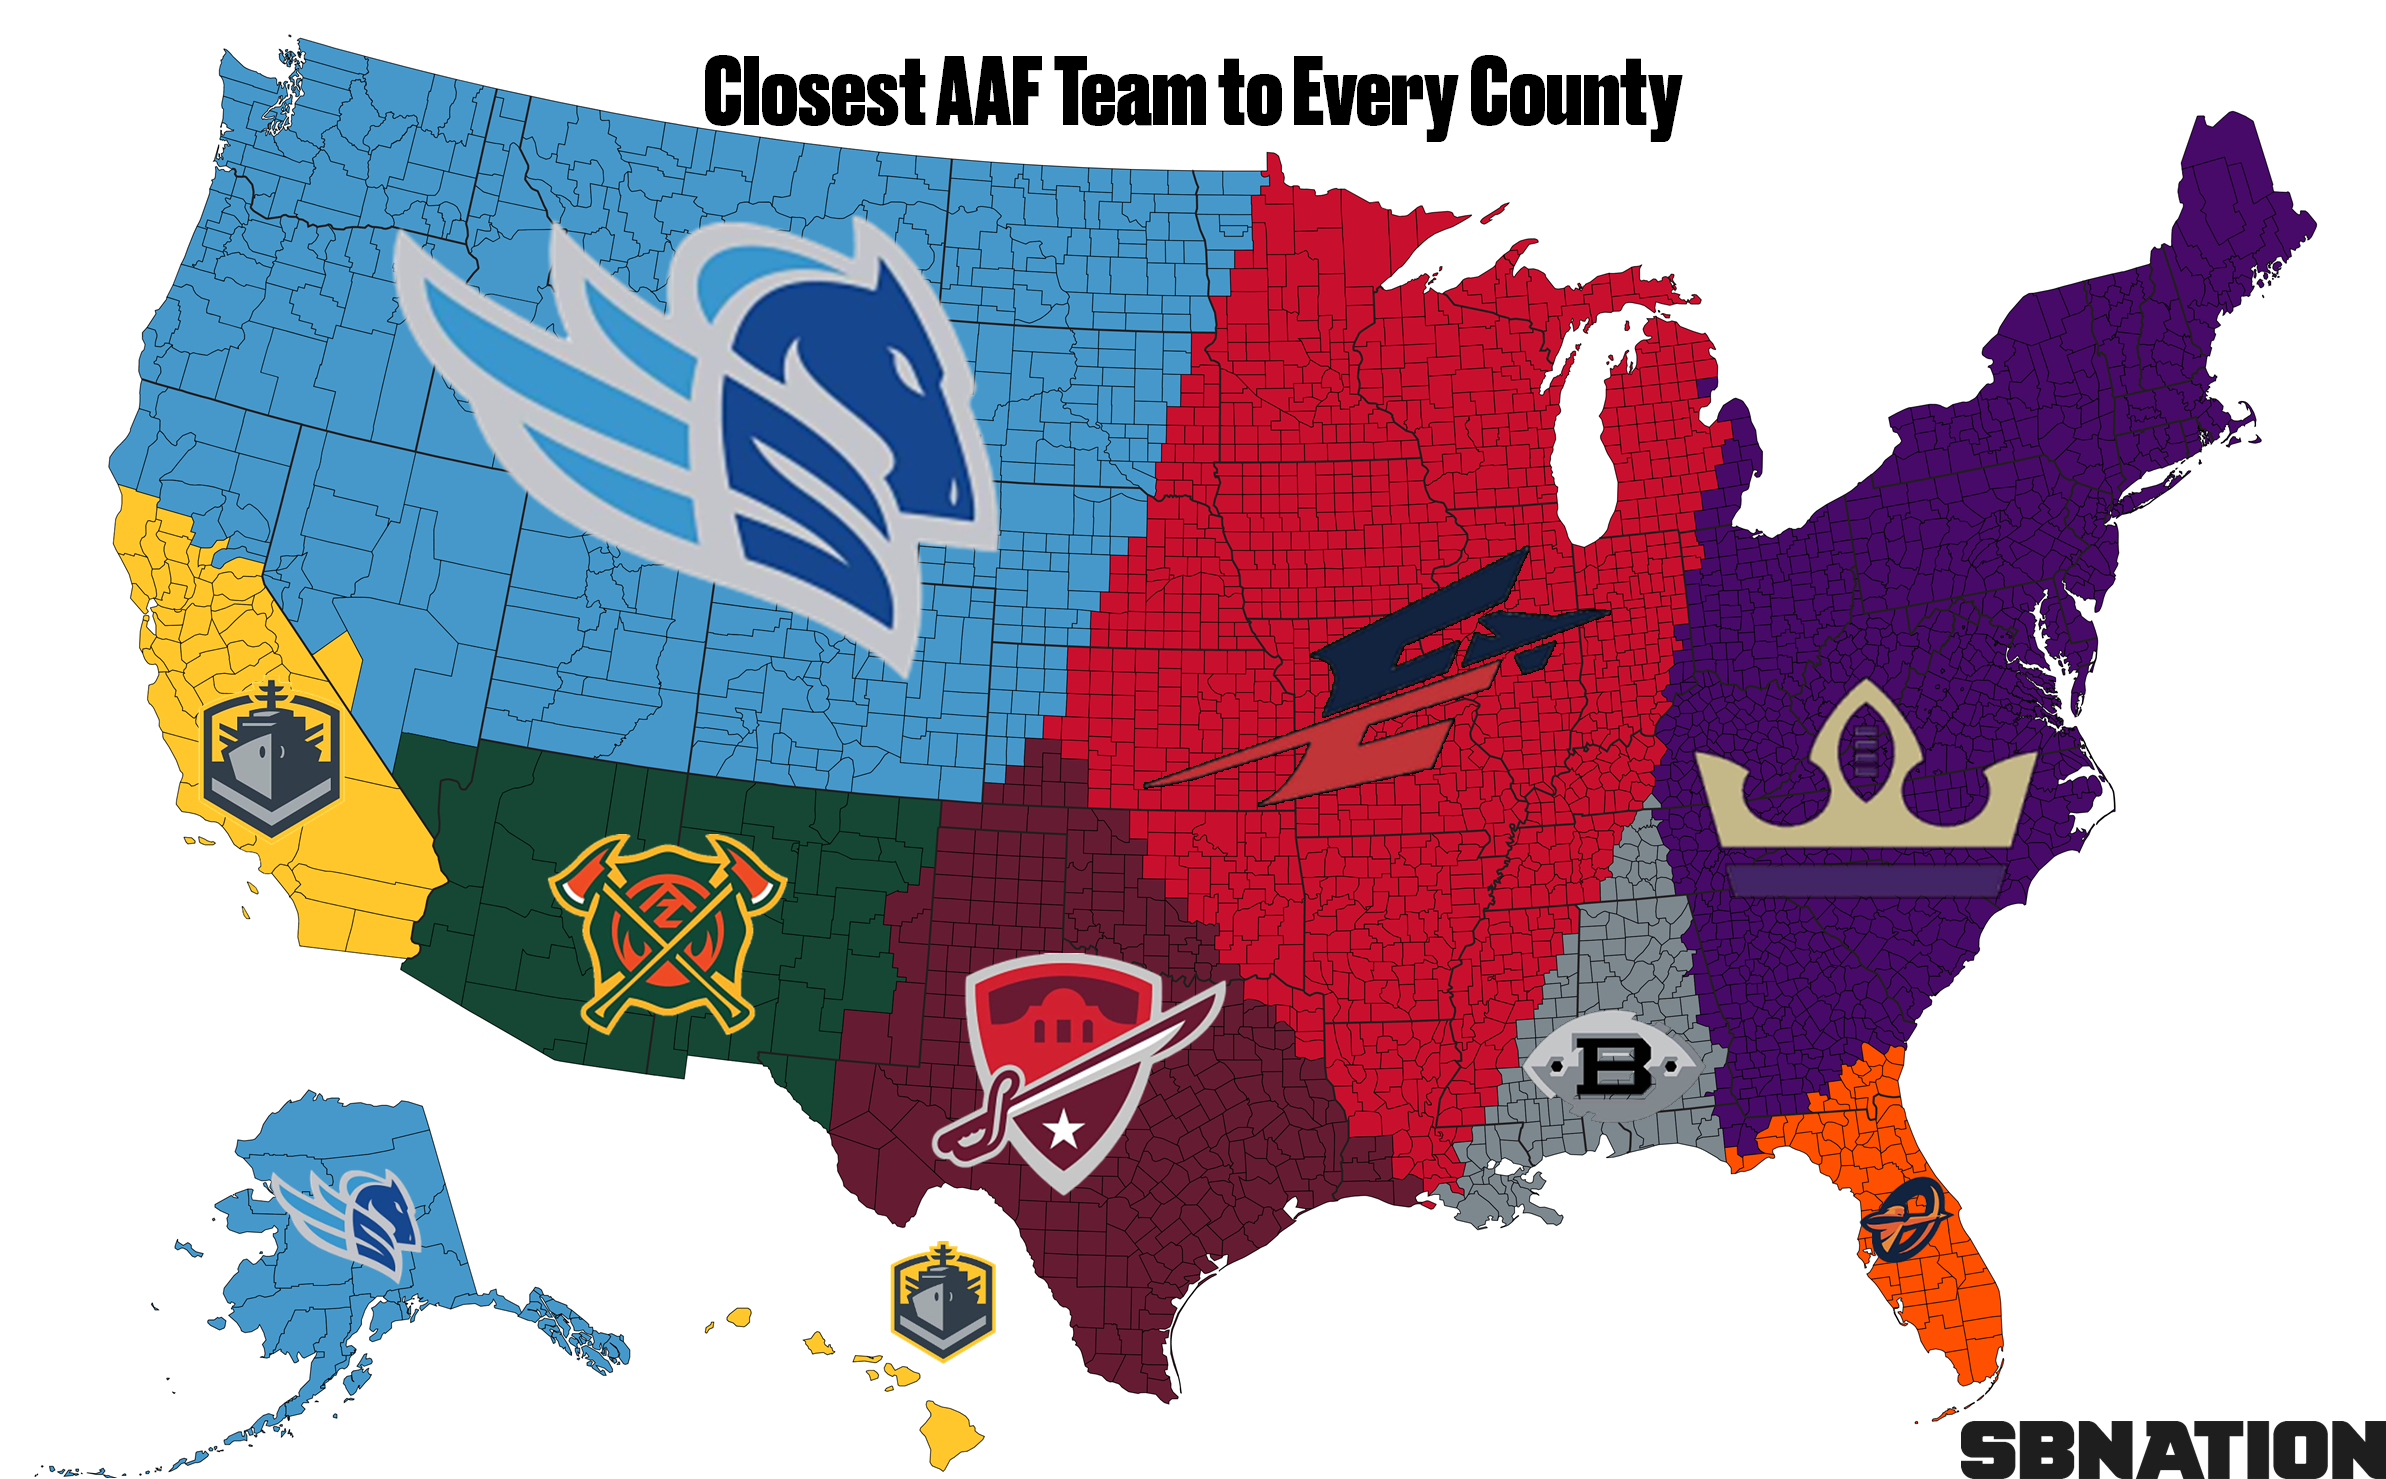 2 maps that might help you decide which AAF team to cheer for